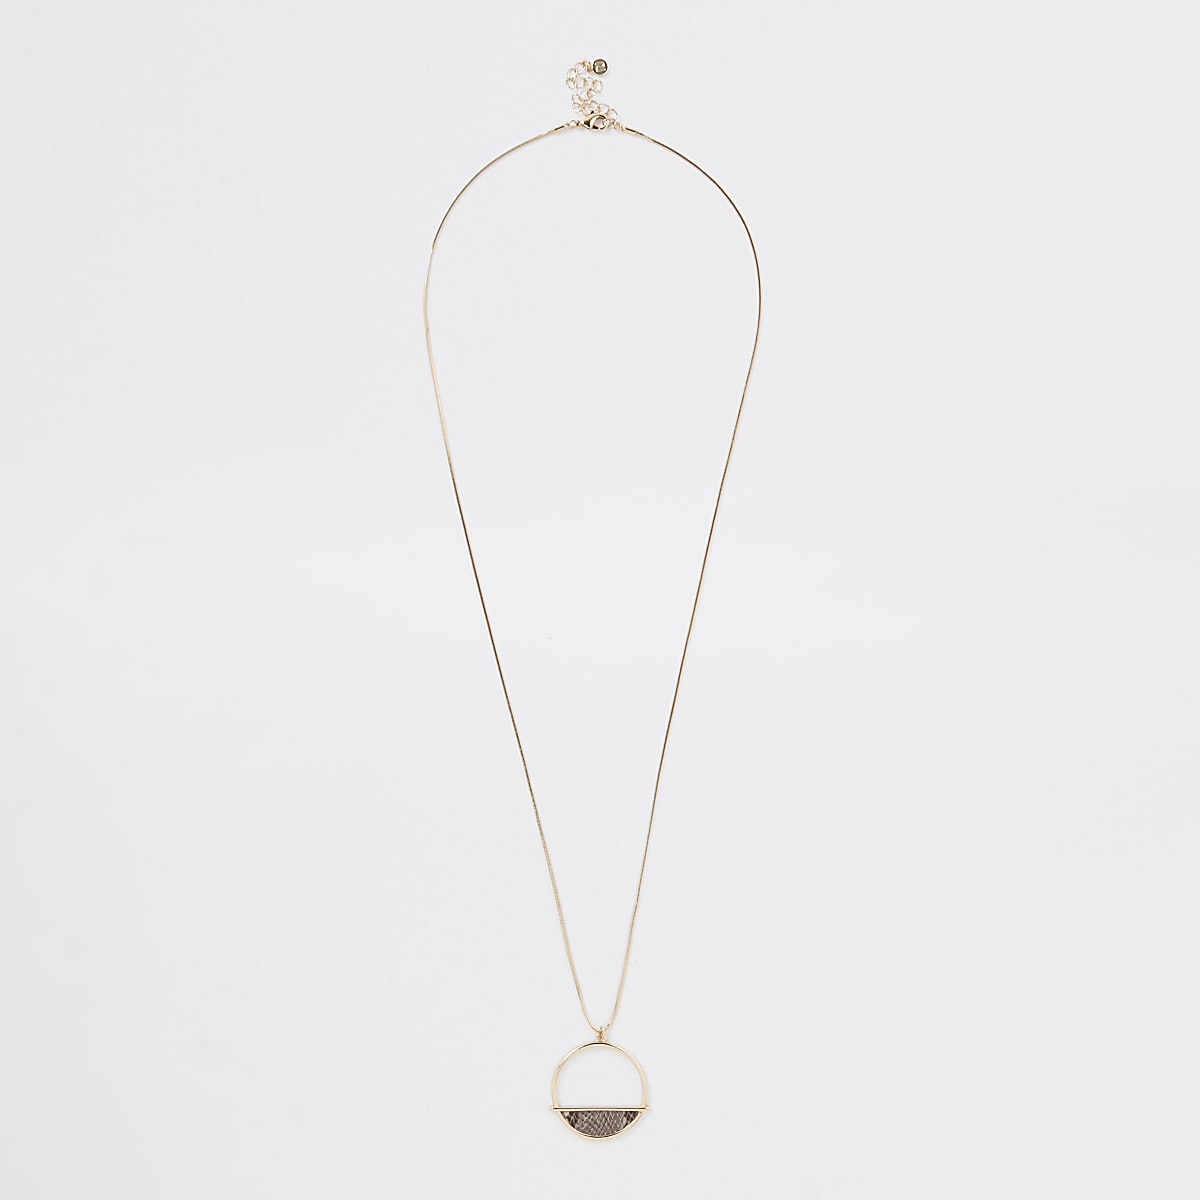 Gold colour snake chain long pendant necklace